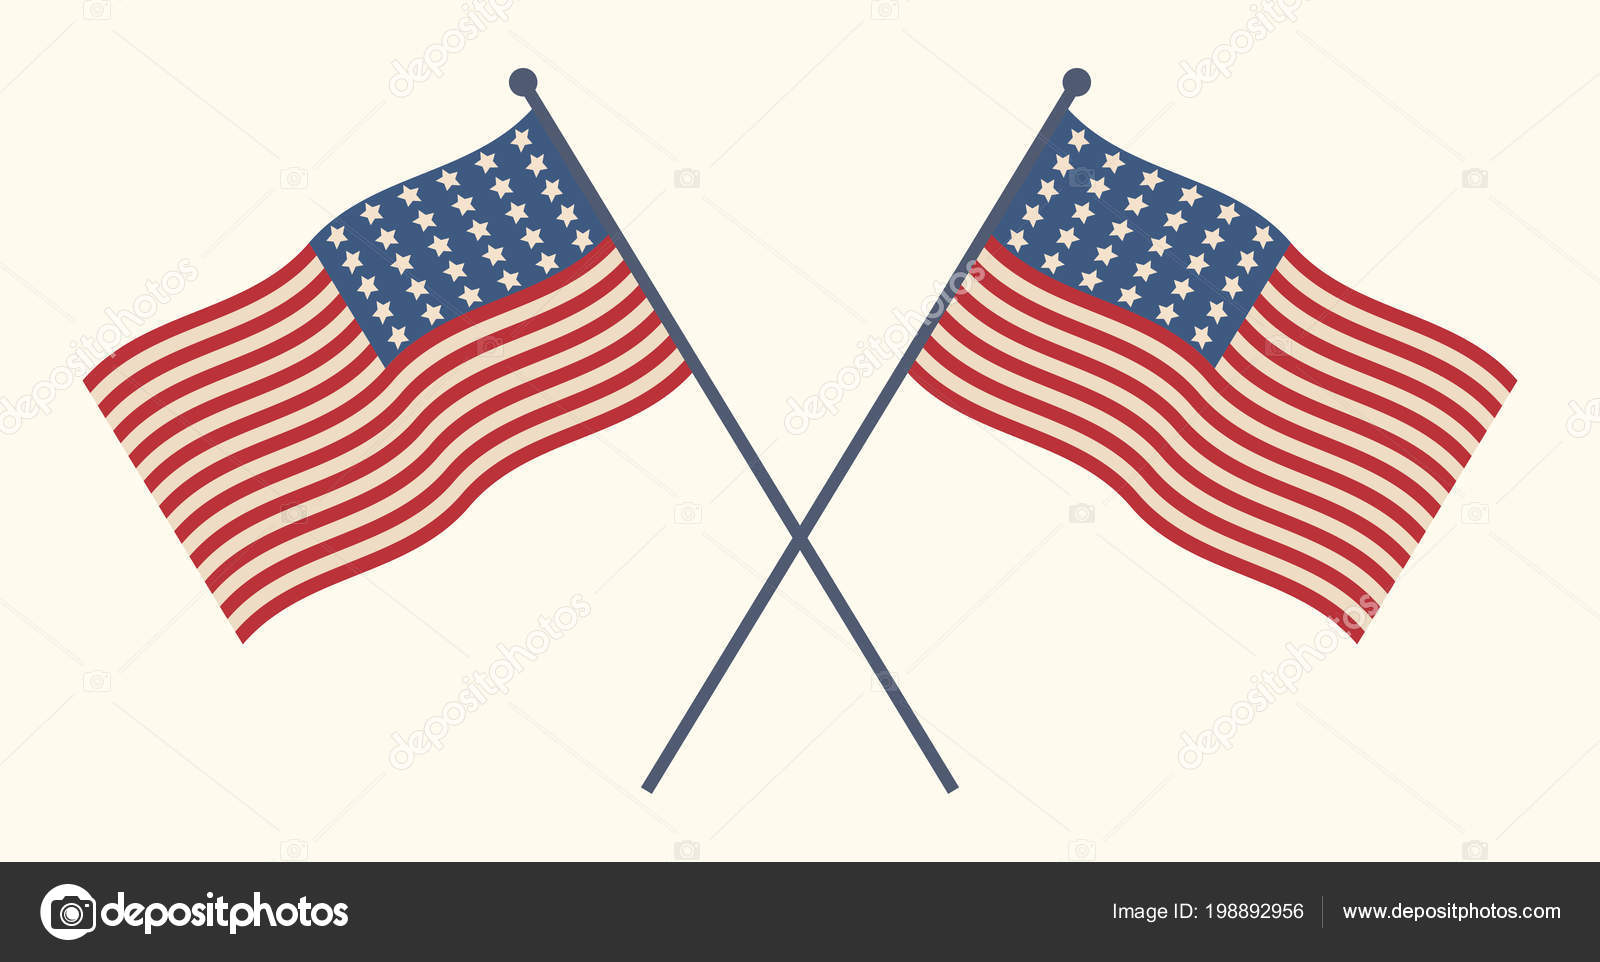 e41a4886fcf Two United States crossed flags patriotic illustration. American  Independence day design elements. Stars and stripes isolated over white.